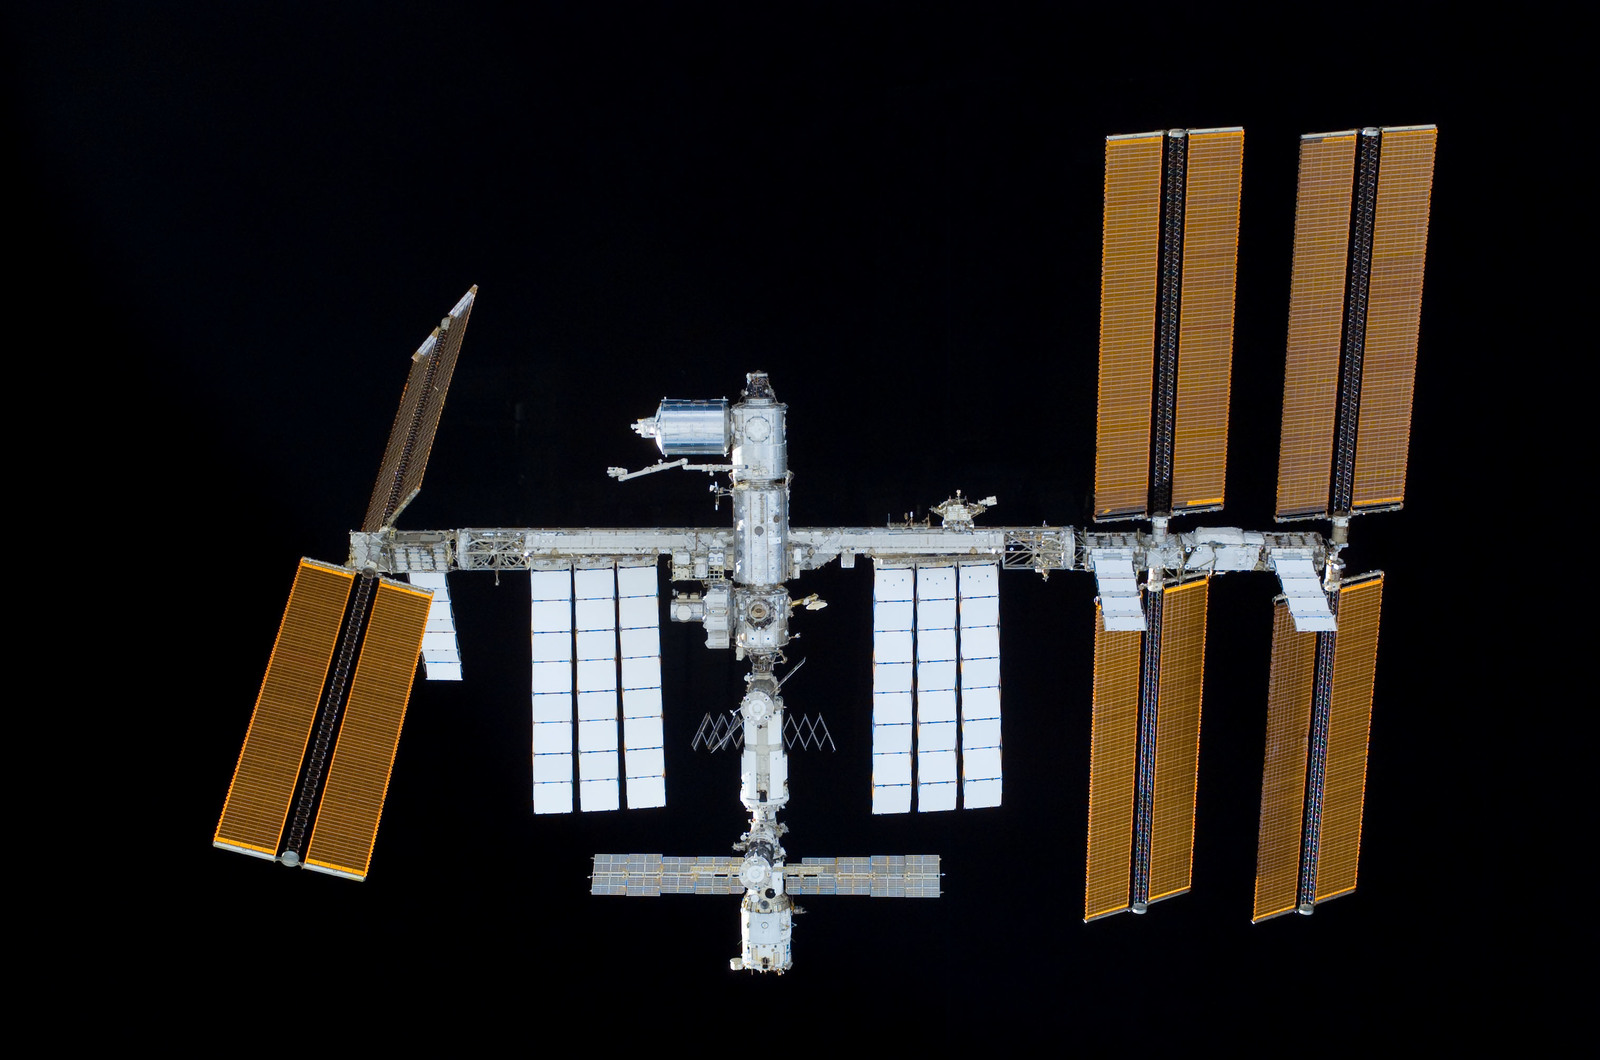 S122E011027 - STS-122 - View of ISS after STS-122 Undocking